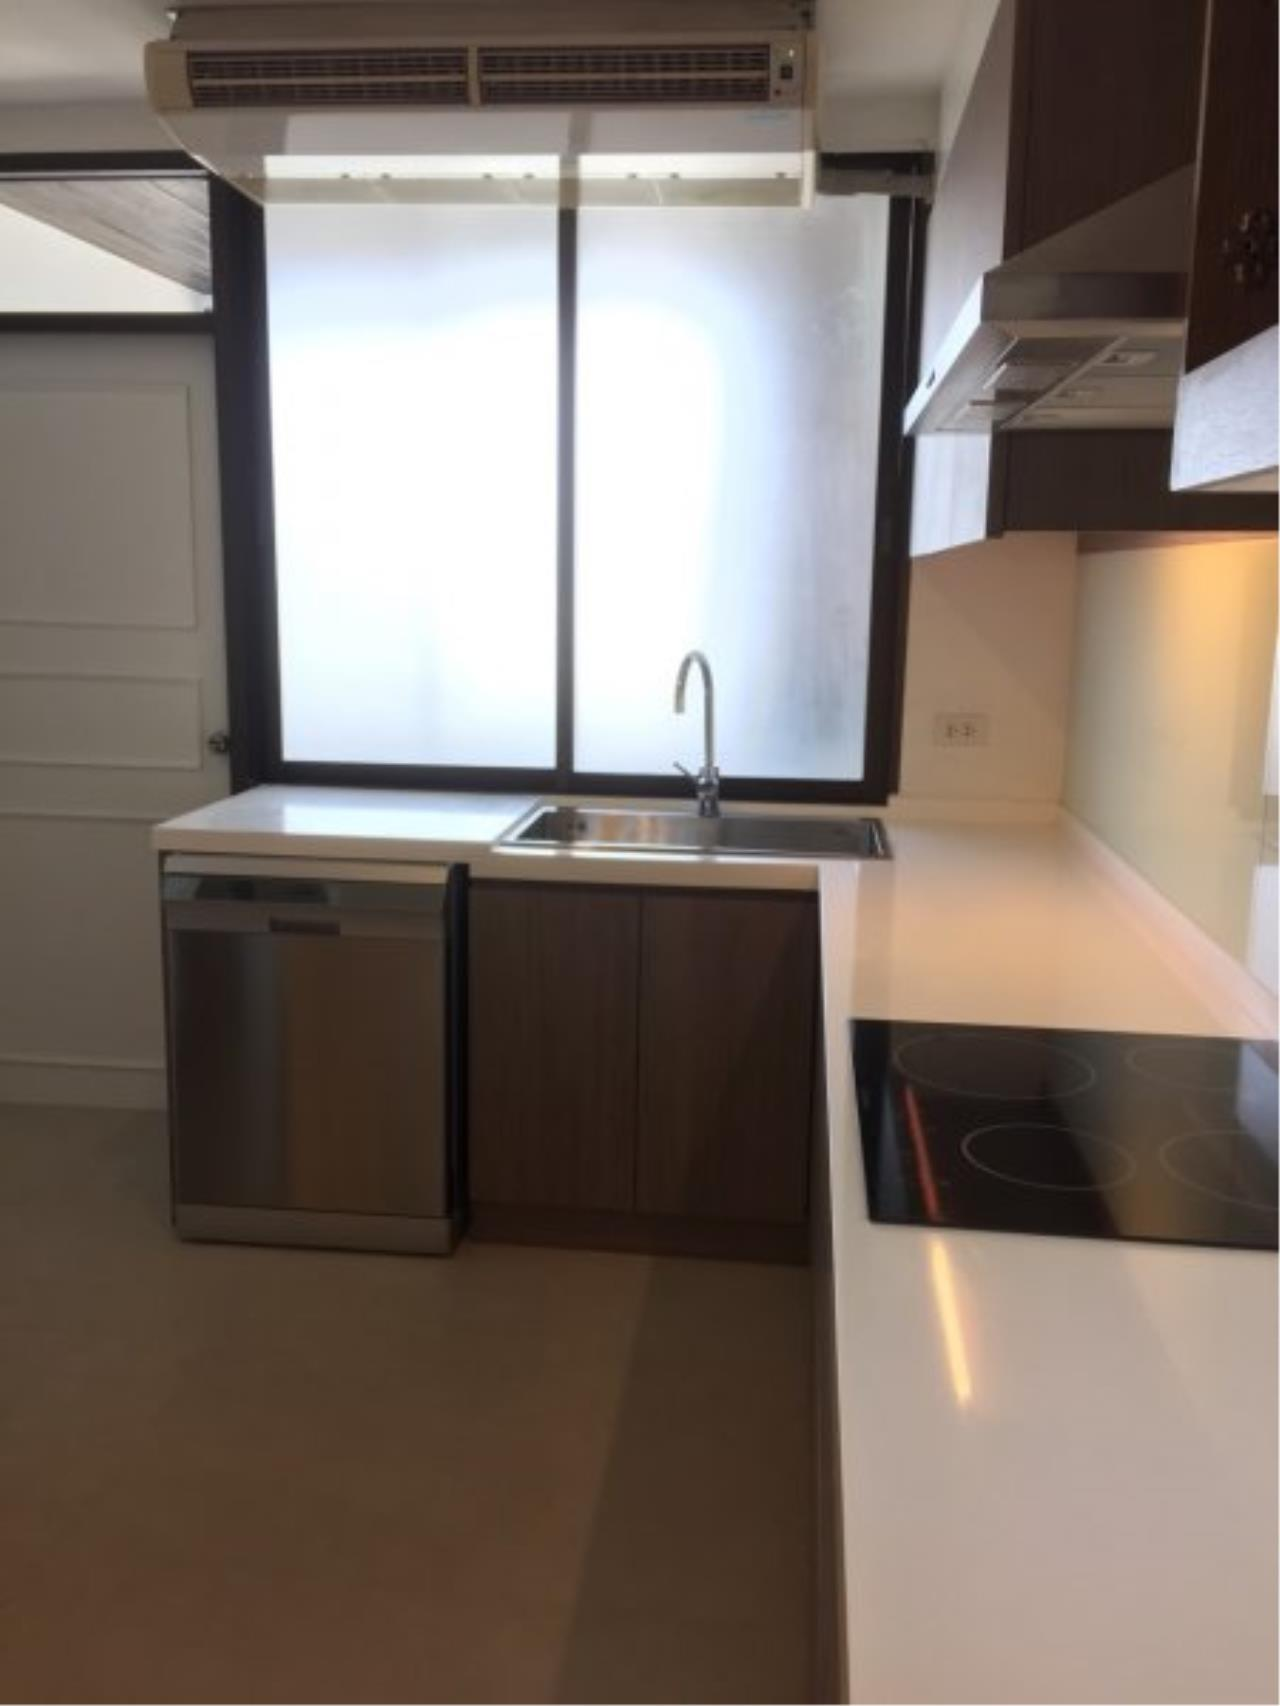 Piri Property Agency's Huge 3 Bedrooms in the Prime Mansion Condo for sale on high floor 8